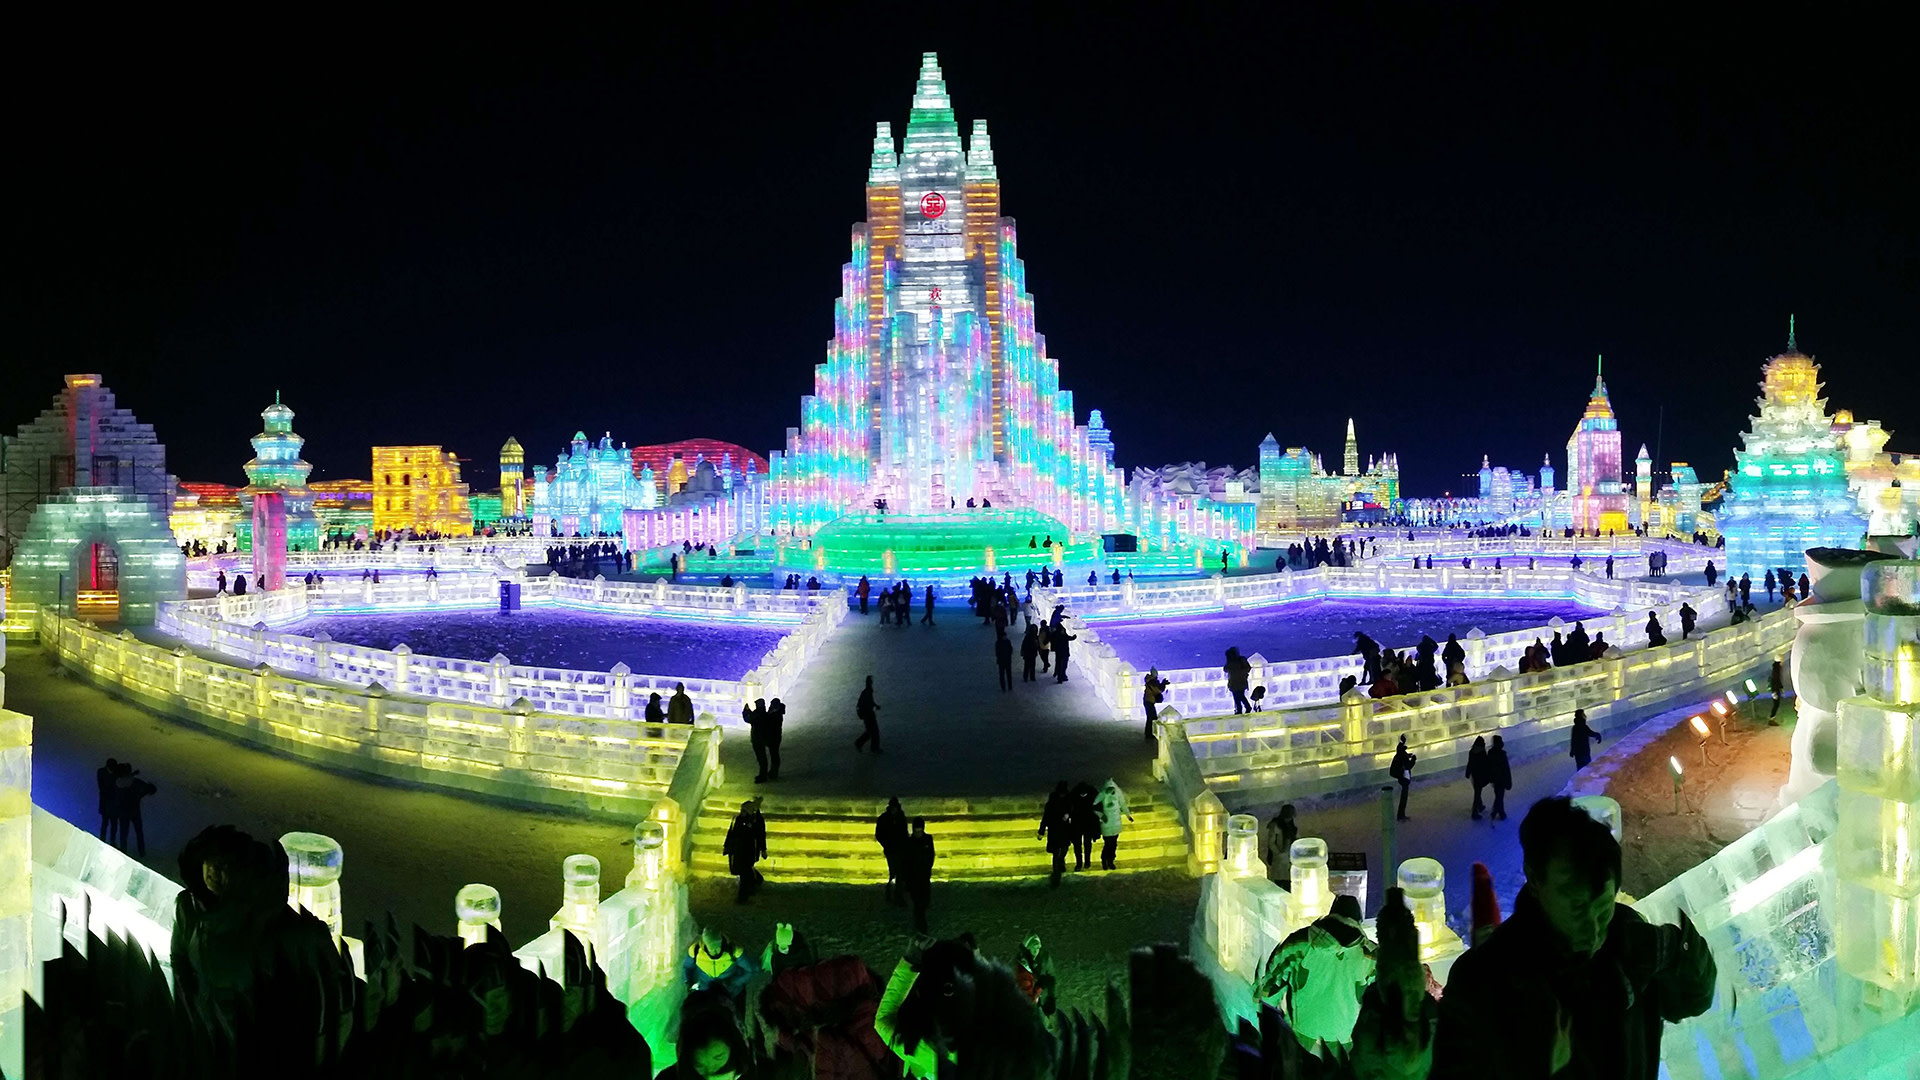 Image: CHINA-LEISURE-ICE FESTIVAL